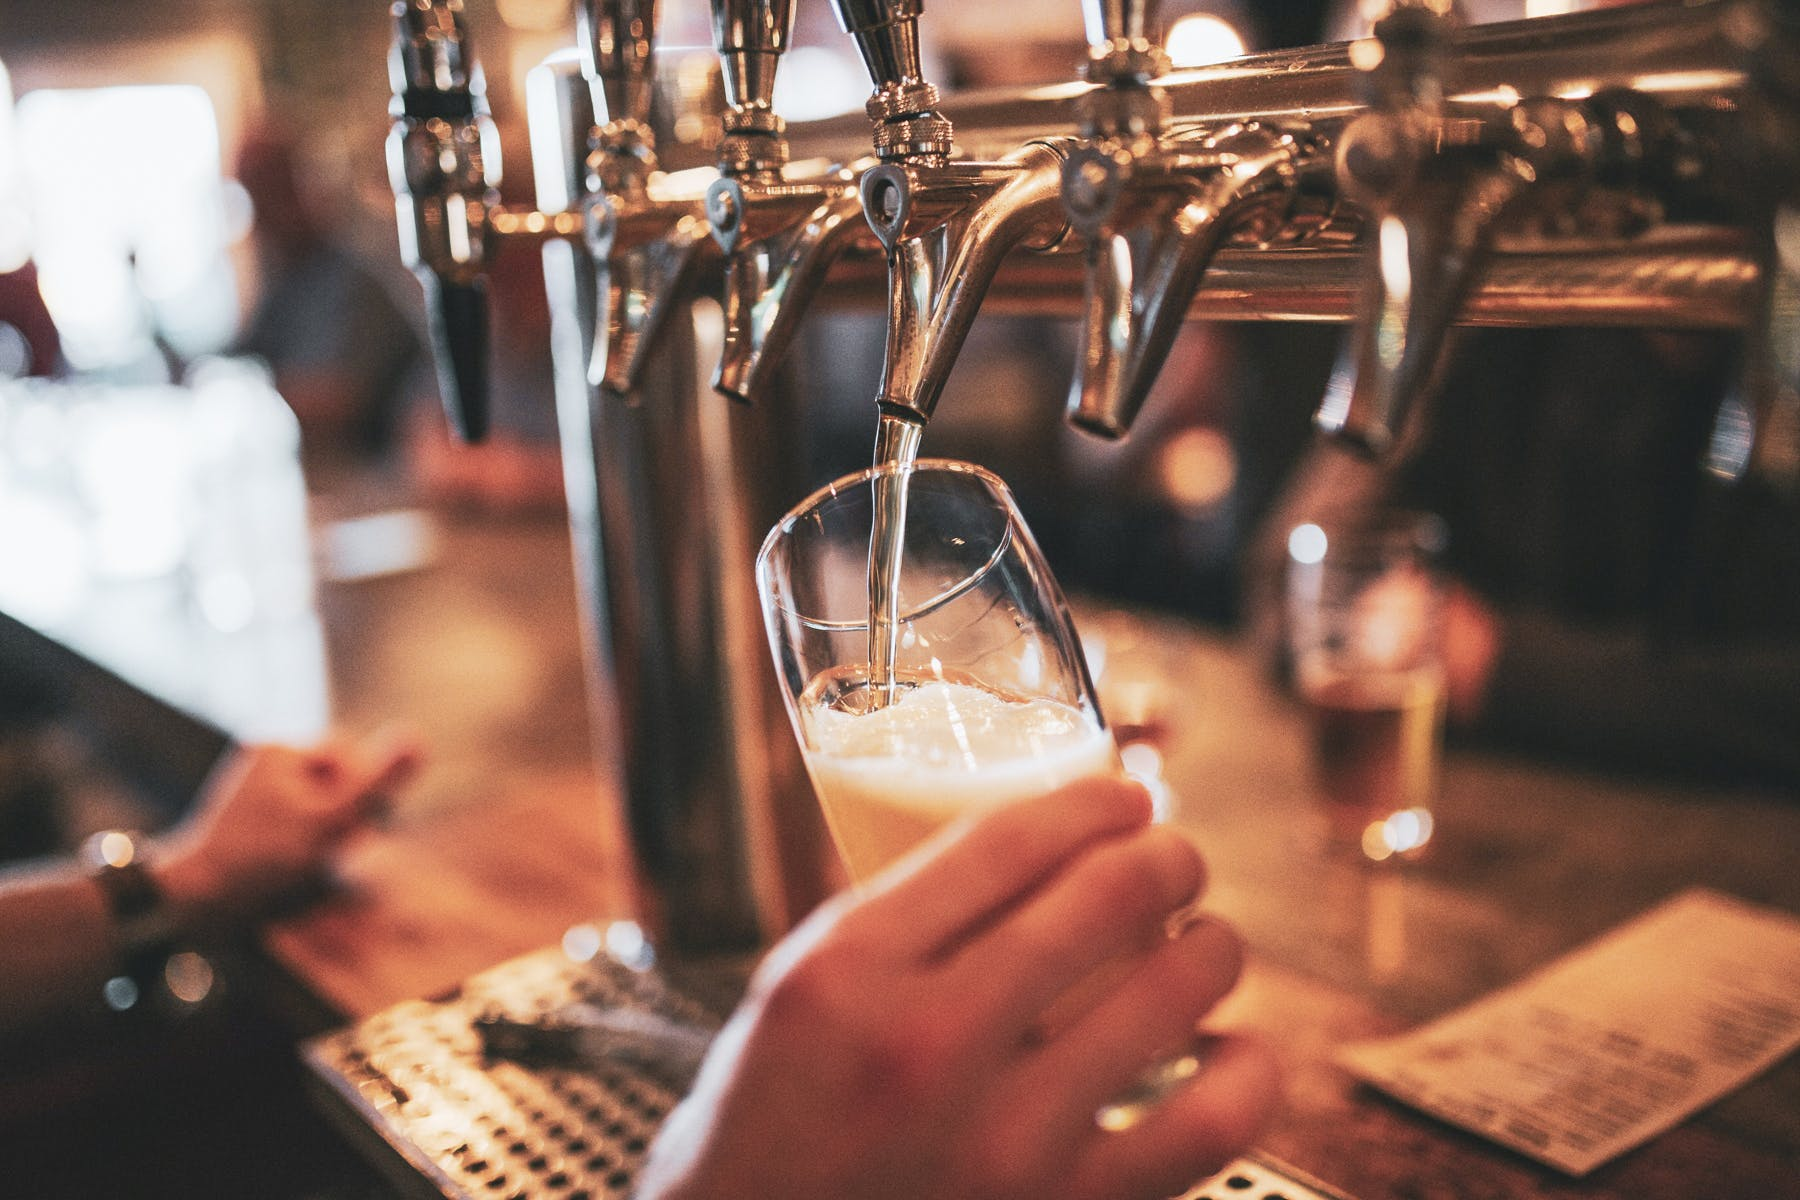 Pouring a Pangaea draft beer in a glass